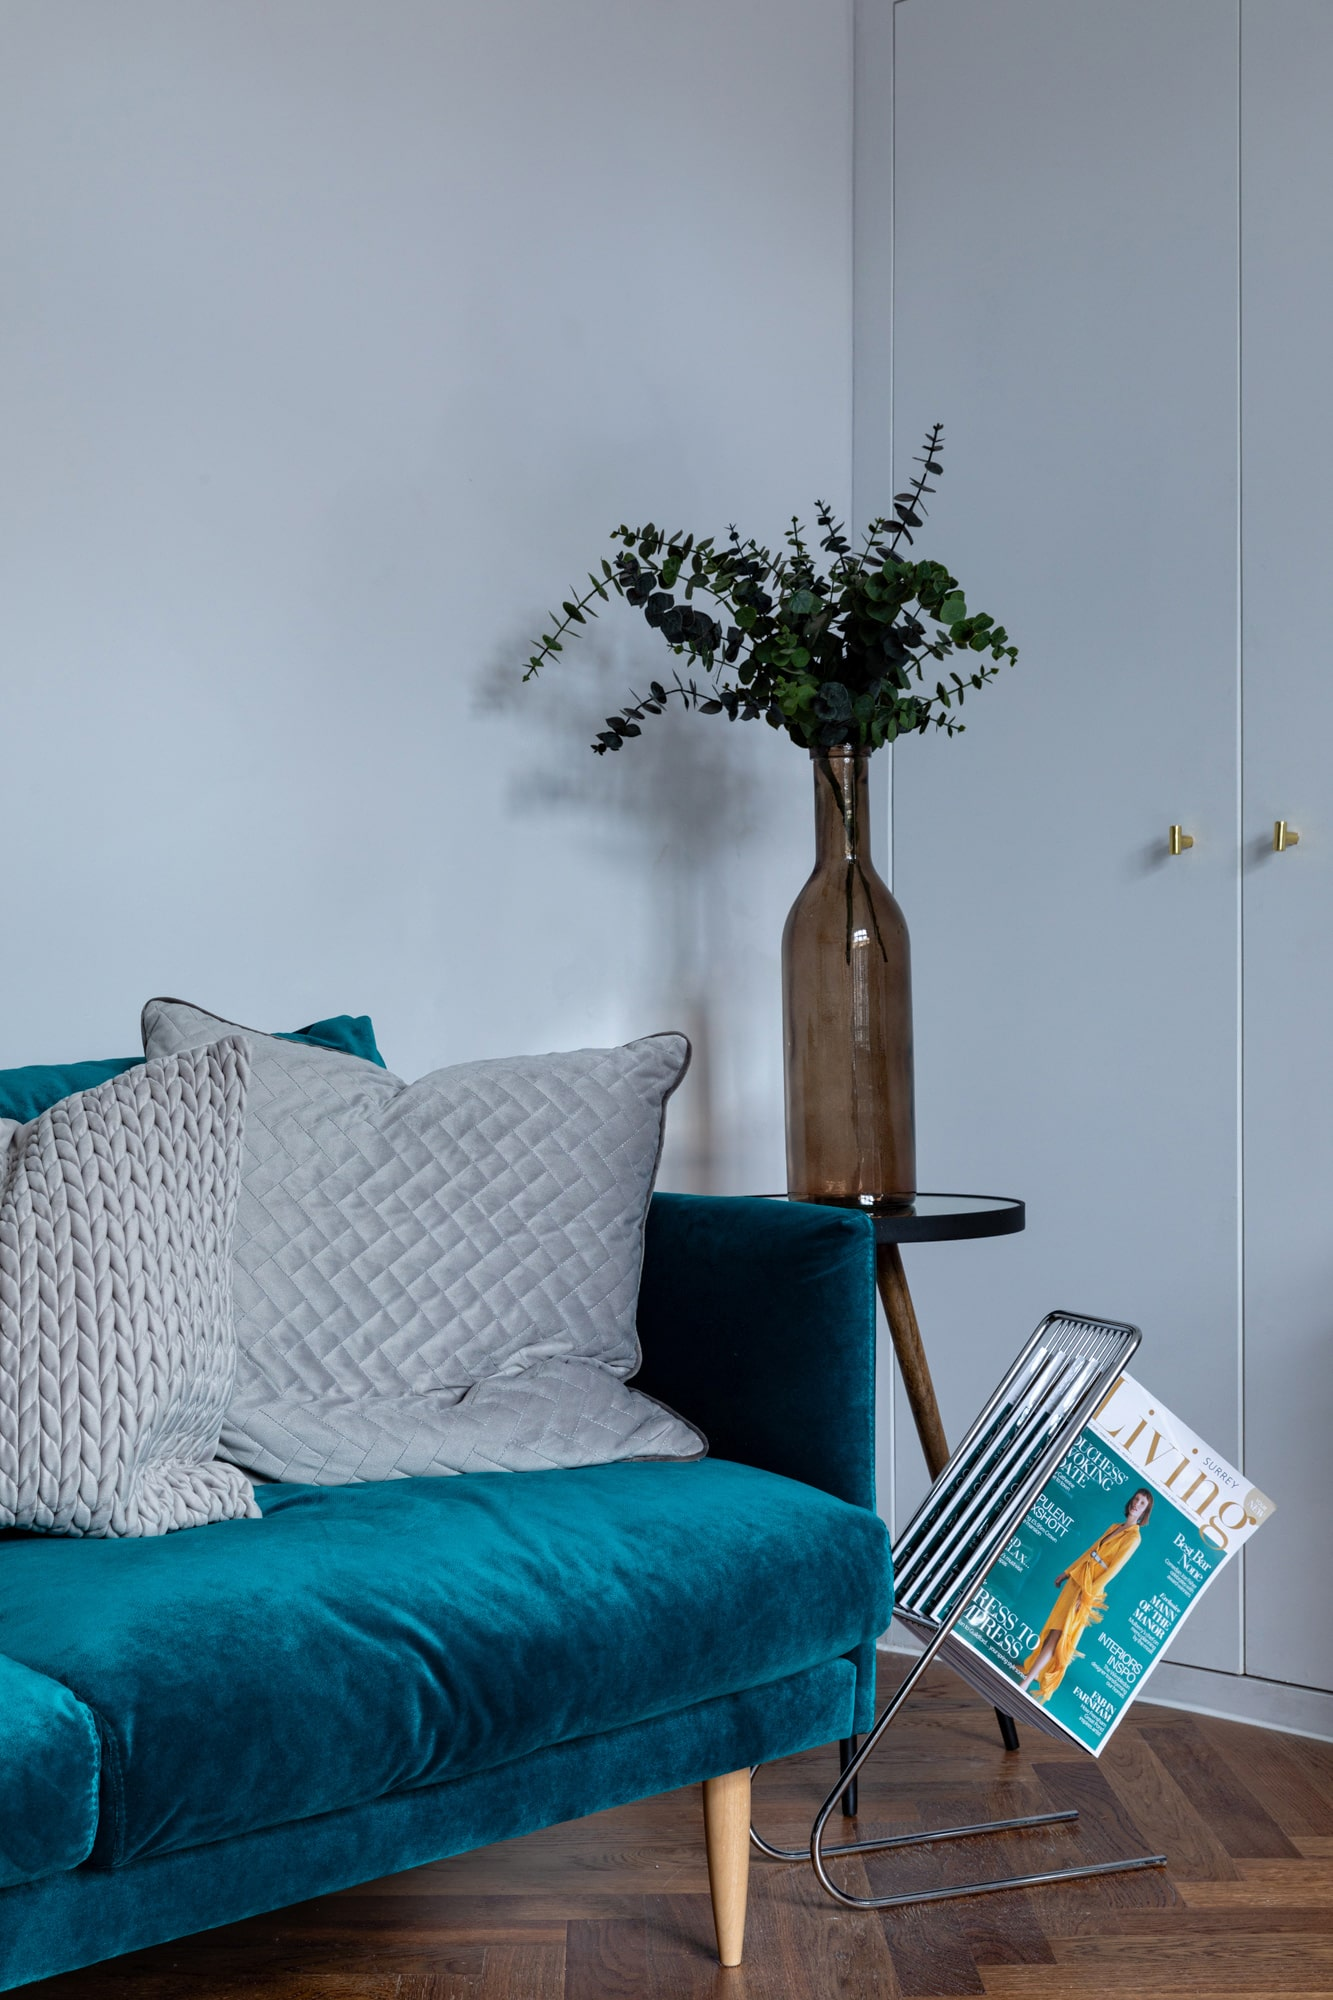 Interior photo close up of a teal blue sofa with two pillows and a side table with a vase